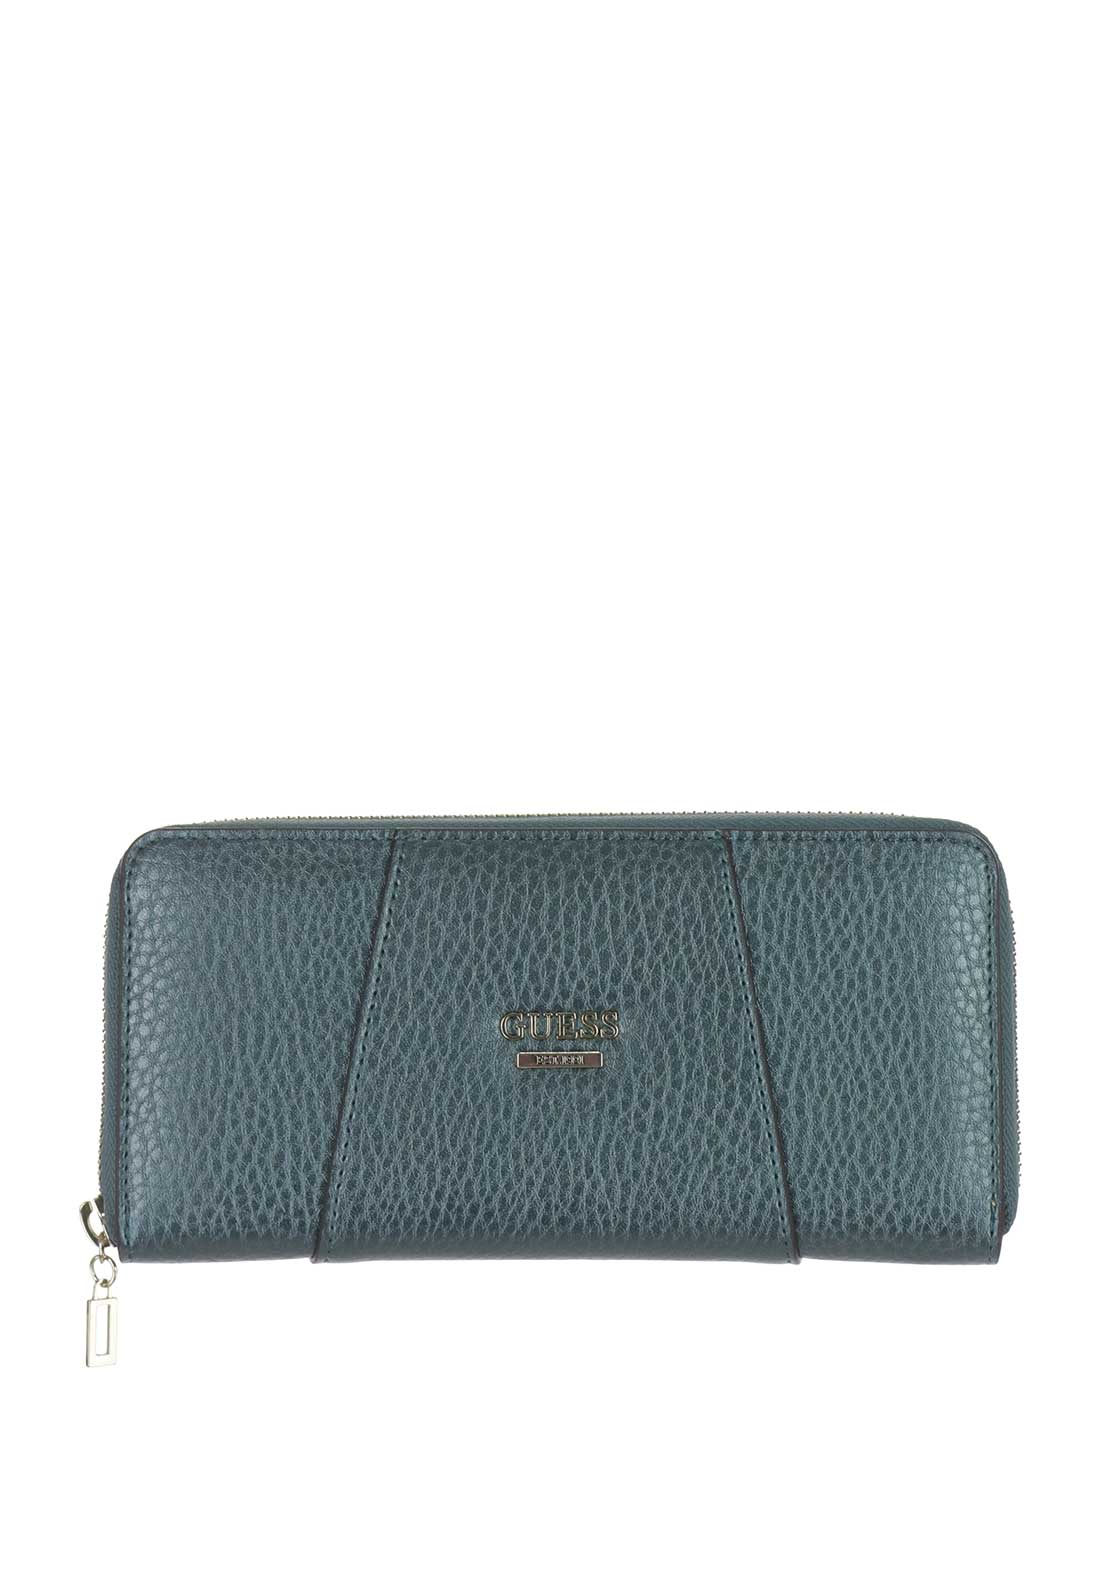 Guess Gia Zip Around Wristlet Purse, Metallic Green